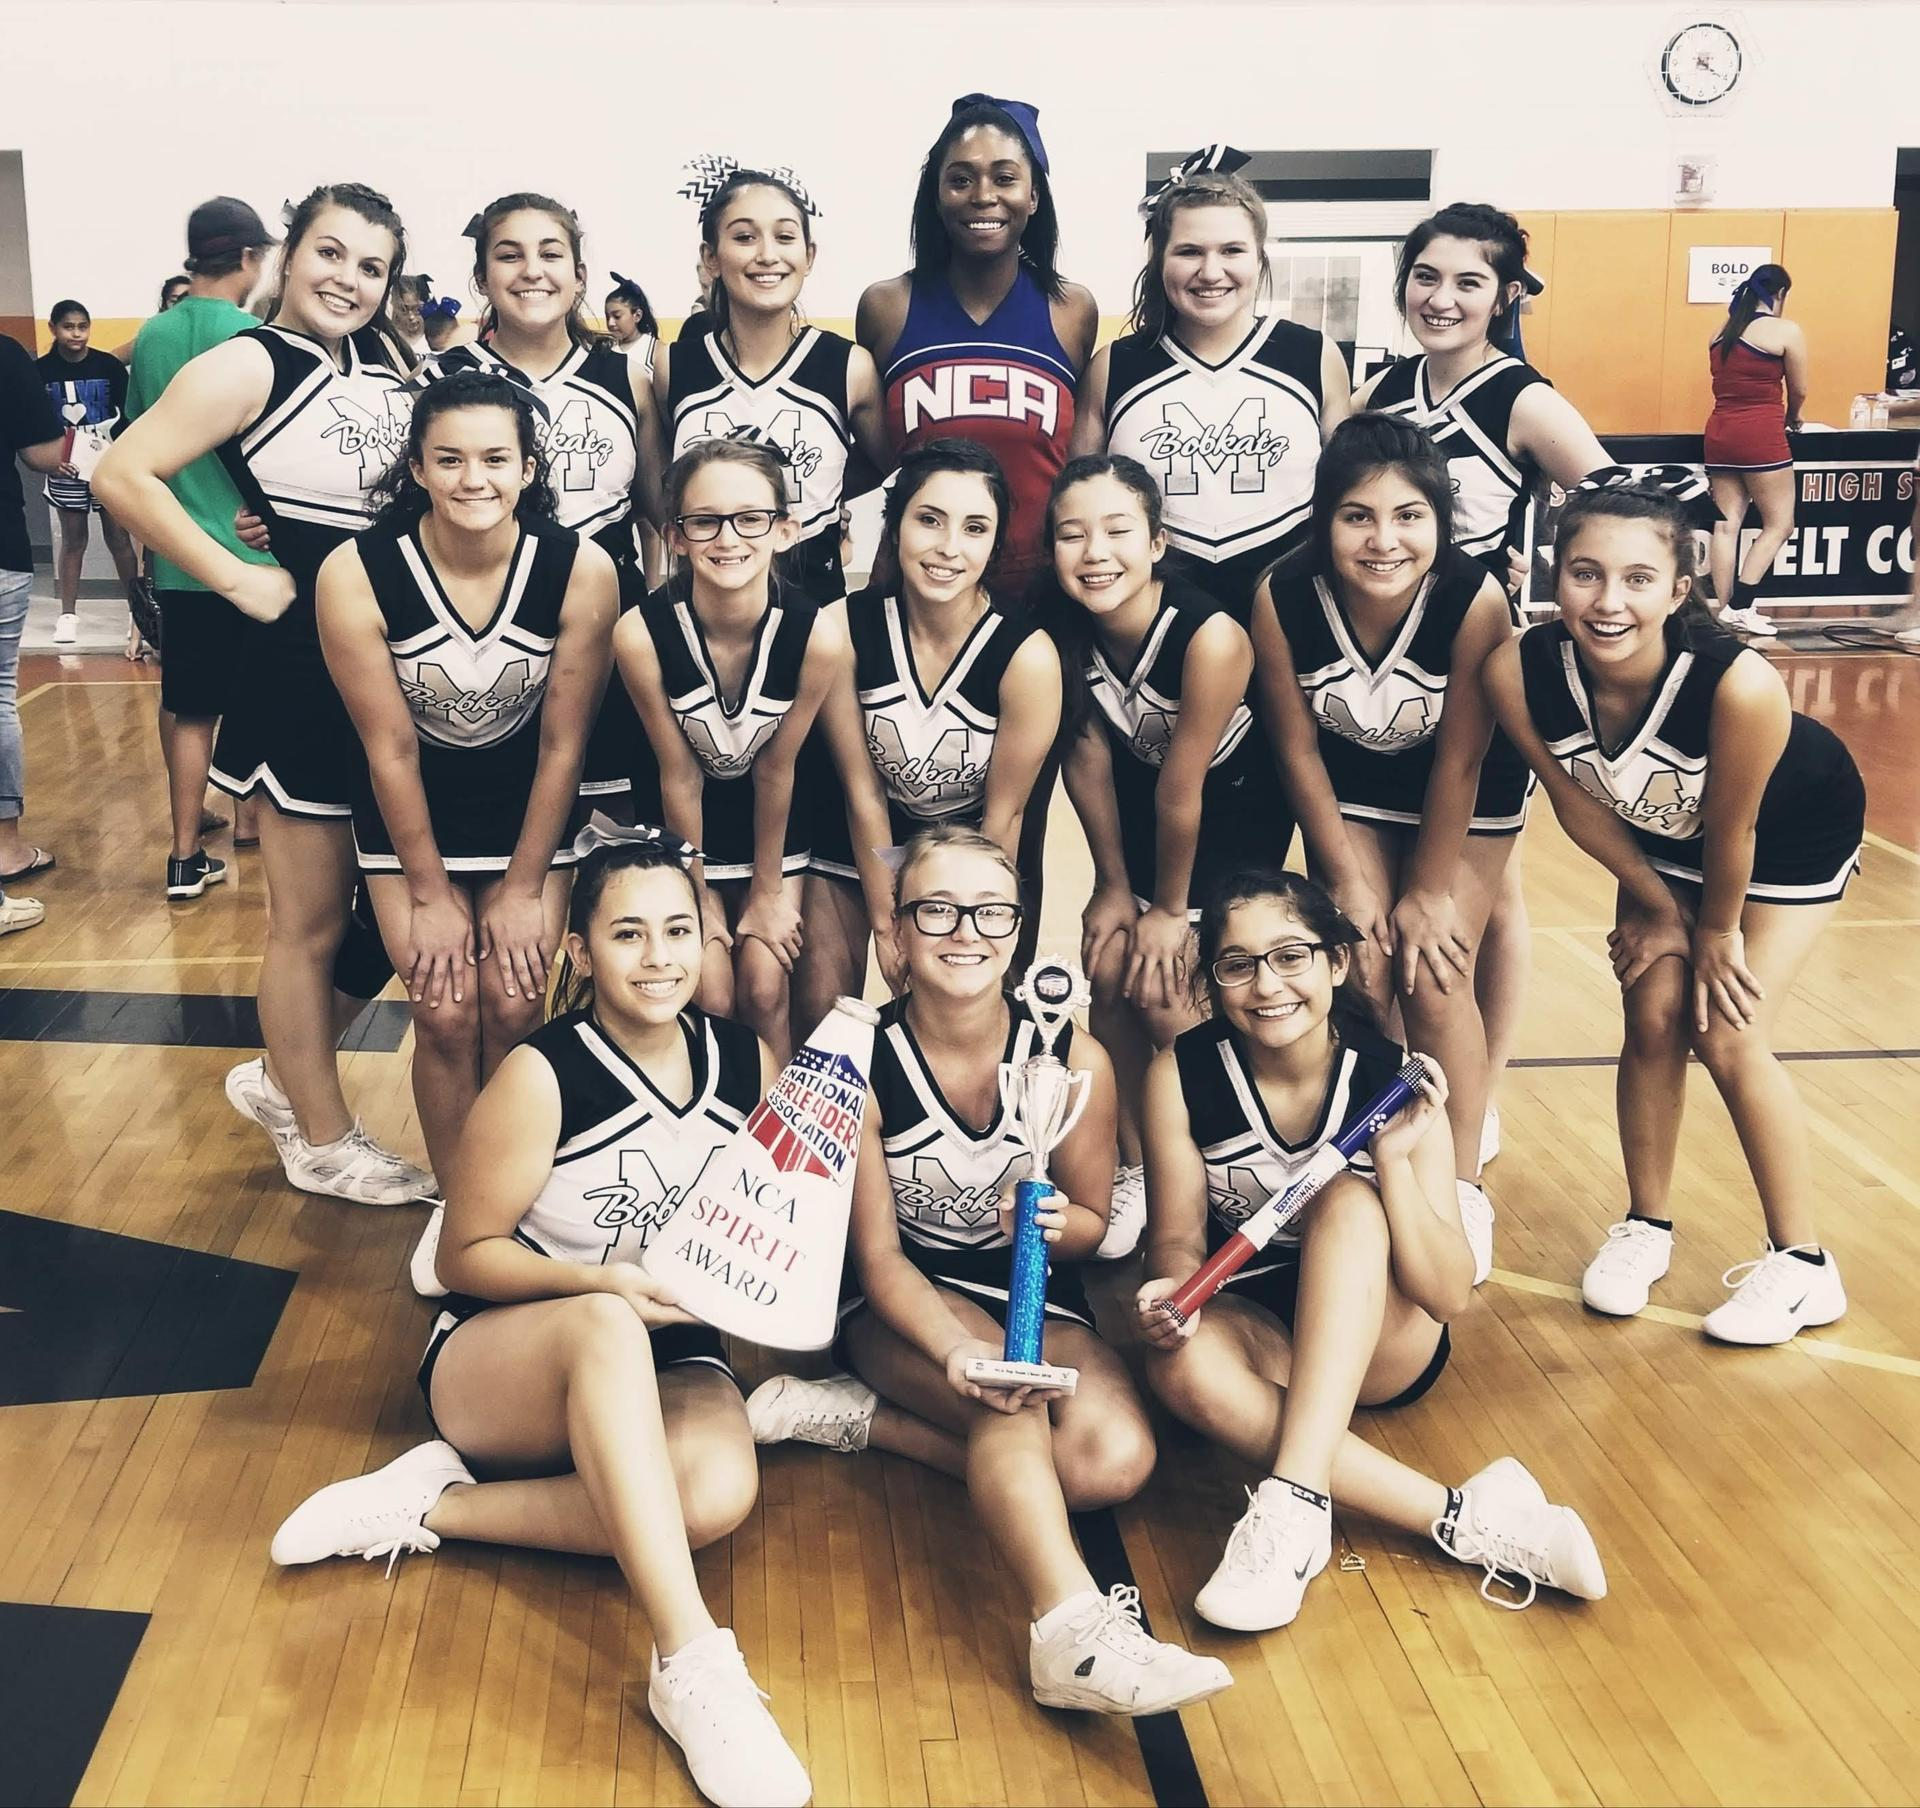 Cheerleaders at camp